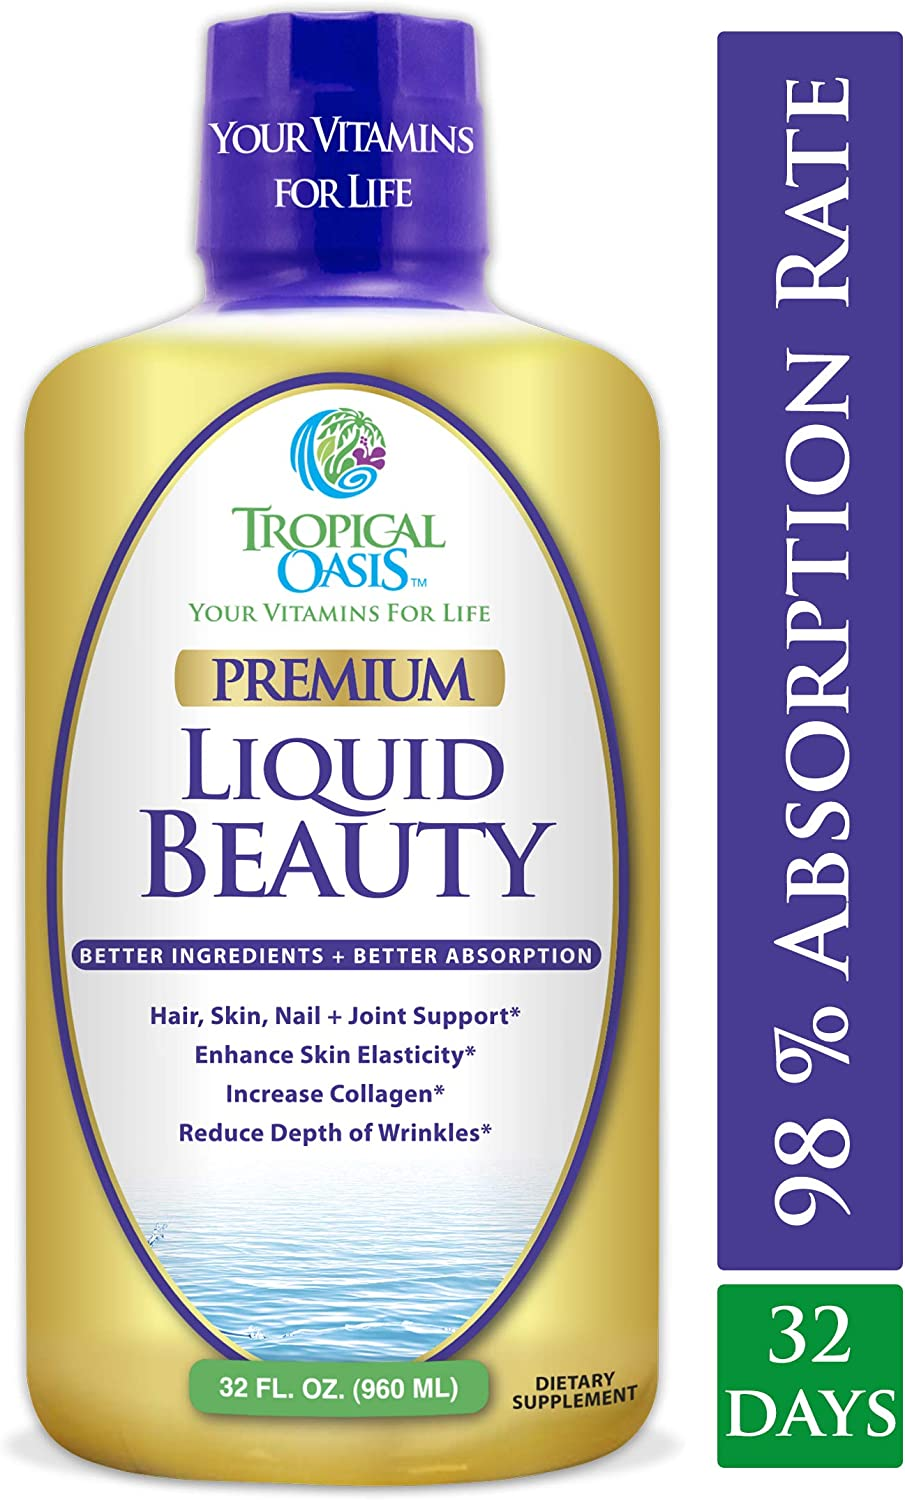 Liquid Beauty | Maximum Strength Hair, Skin & Nails Vitamin | 12,500mcg Biotin, Collagen, Bamboo, DHT Blocker & More| Fast Hair Growth, Less Hair Loss + Healthier Skin & Nails- 98% Absorption, 32 Serv